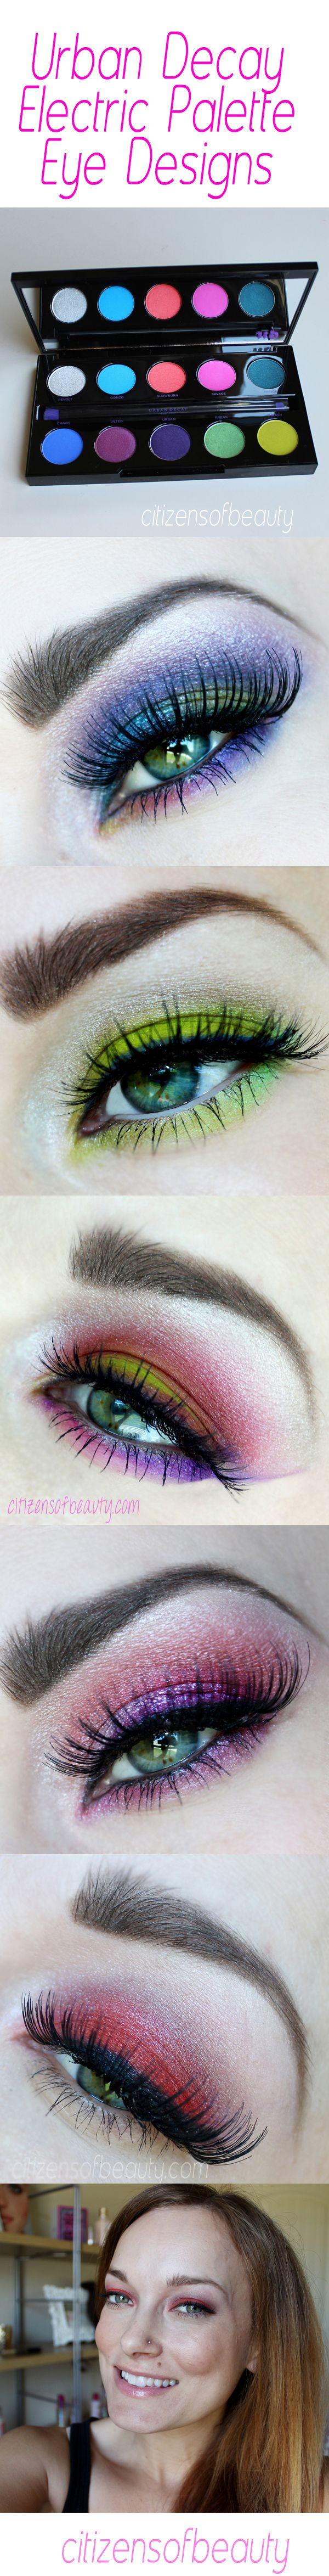 Urban Decay Electric Palette Eye Designs1 How to Use the Shockingly Bright Urban Decay Electric Palette